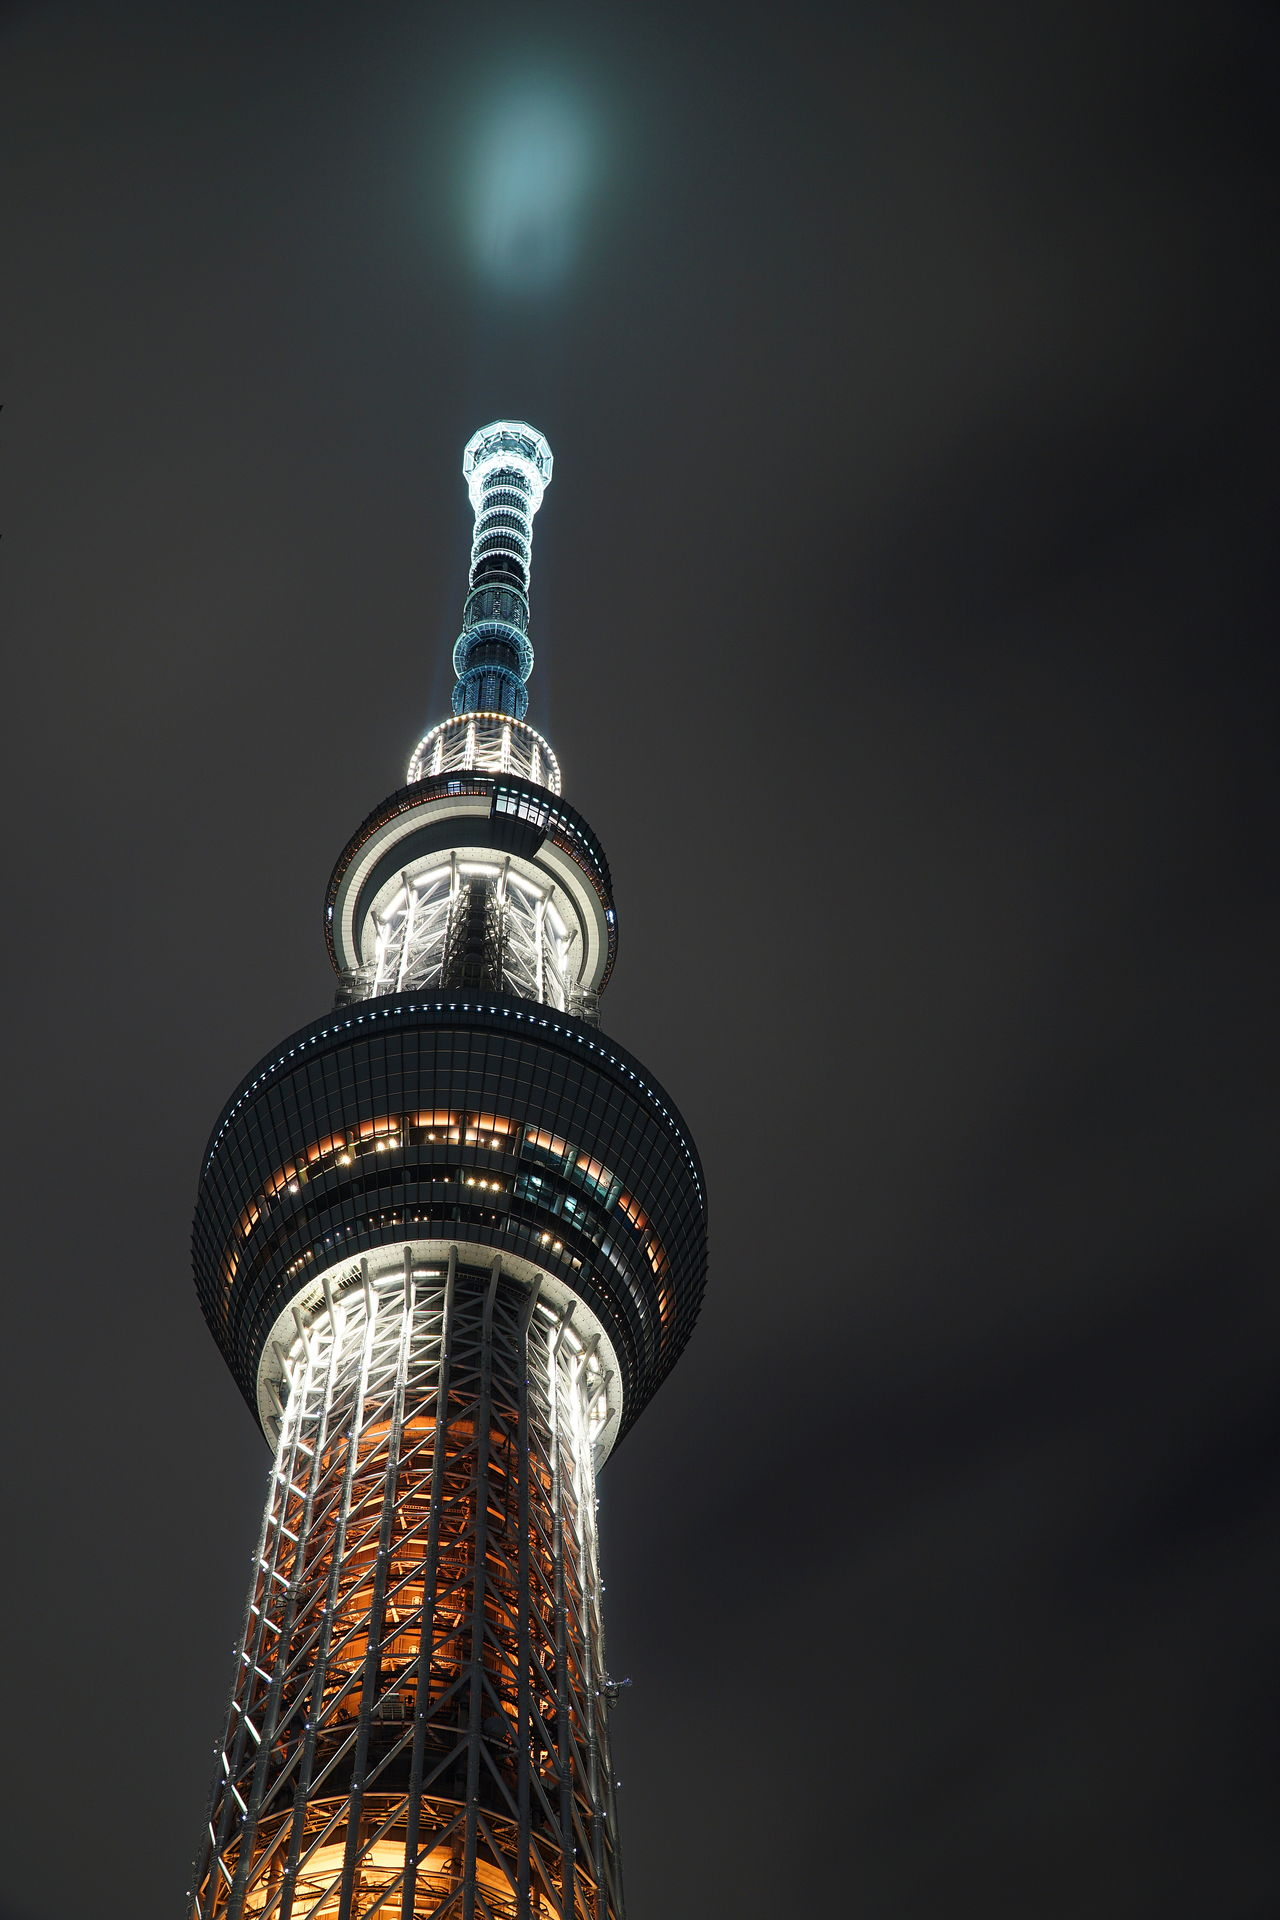 Architecture Built Structure Illuminated Low Angle View Night Skytree Tokyoskytree Tower Travel Destinations The Architect - 2017 EyeEm Awards